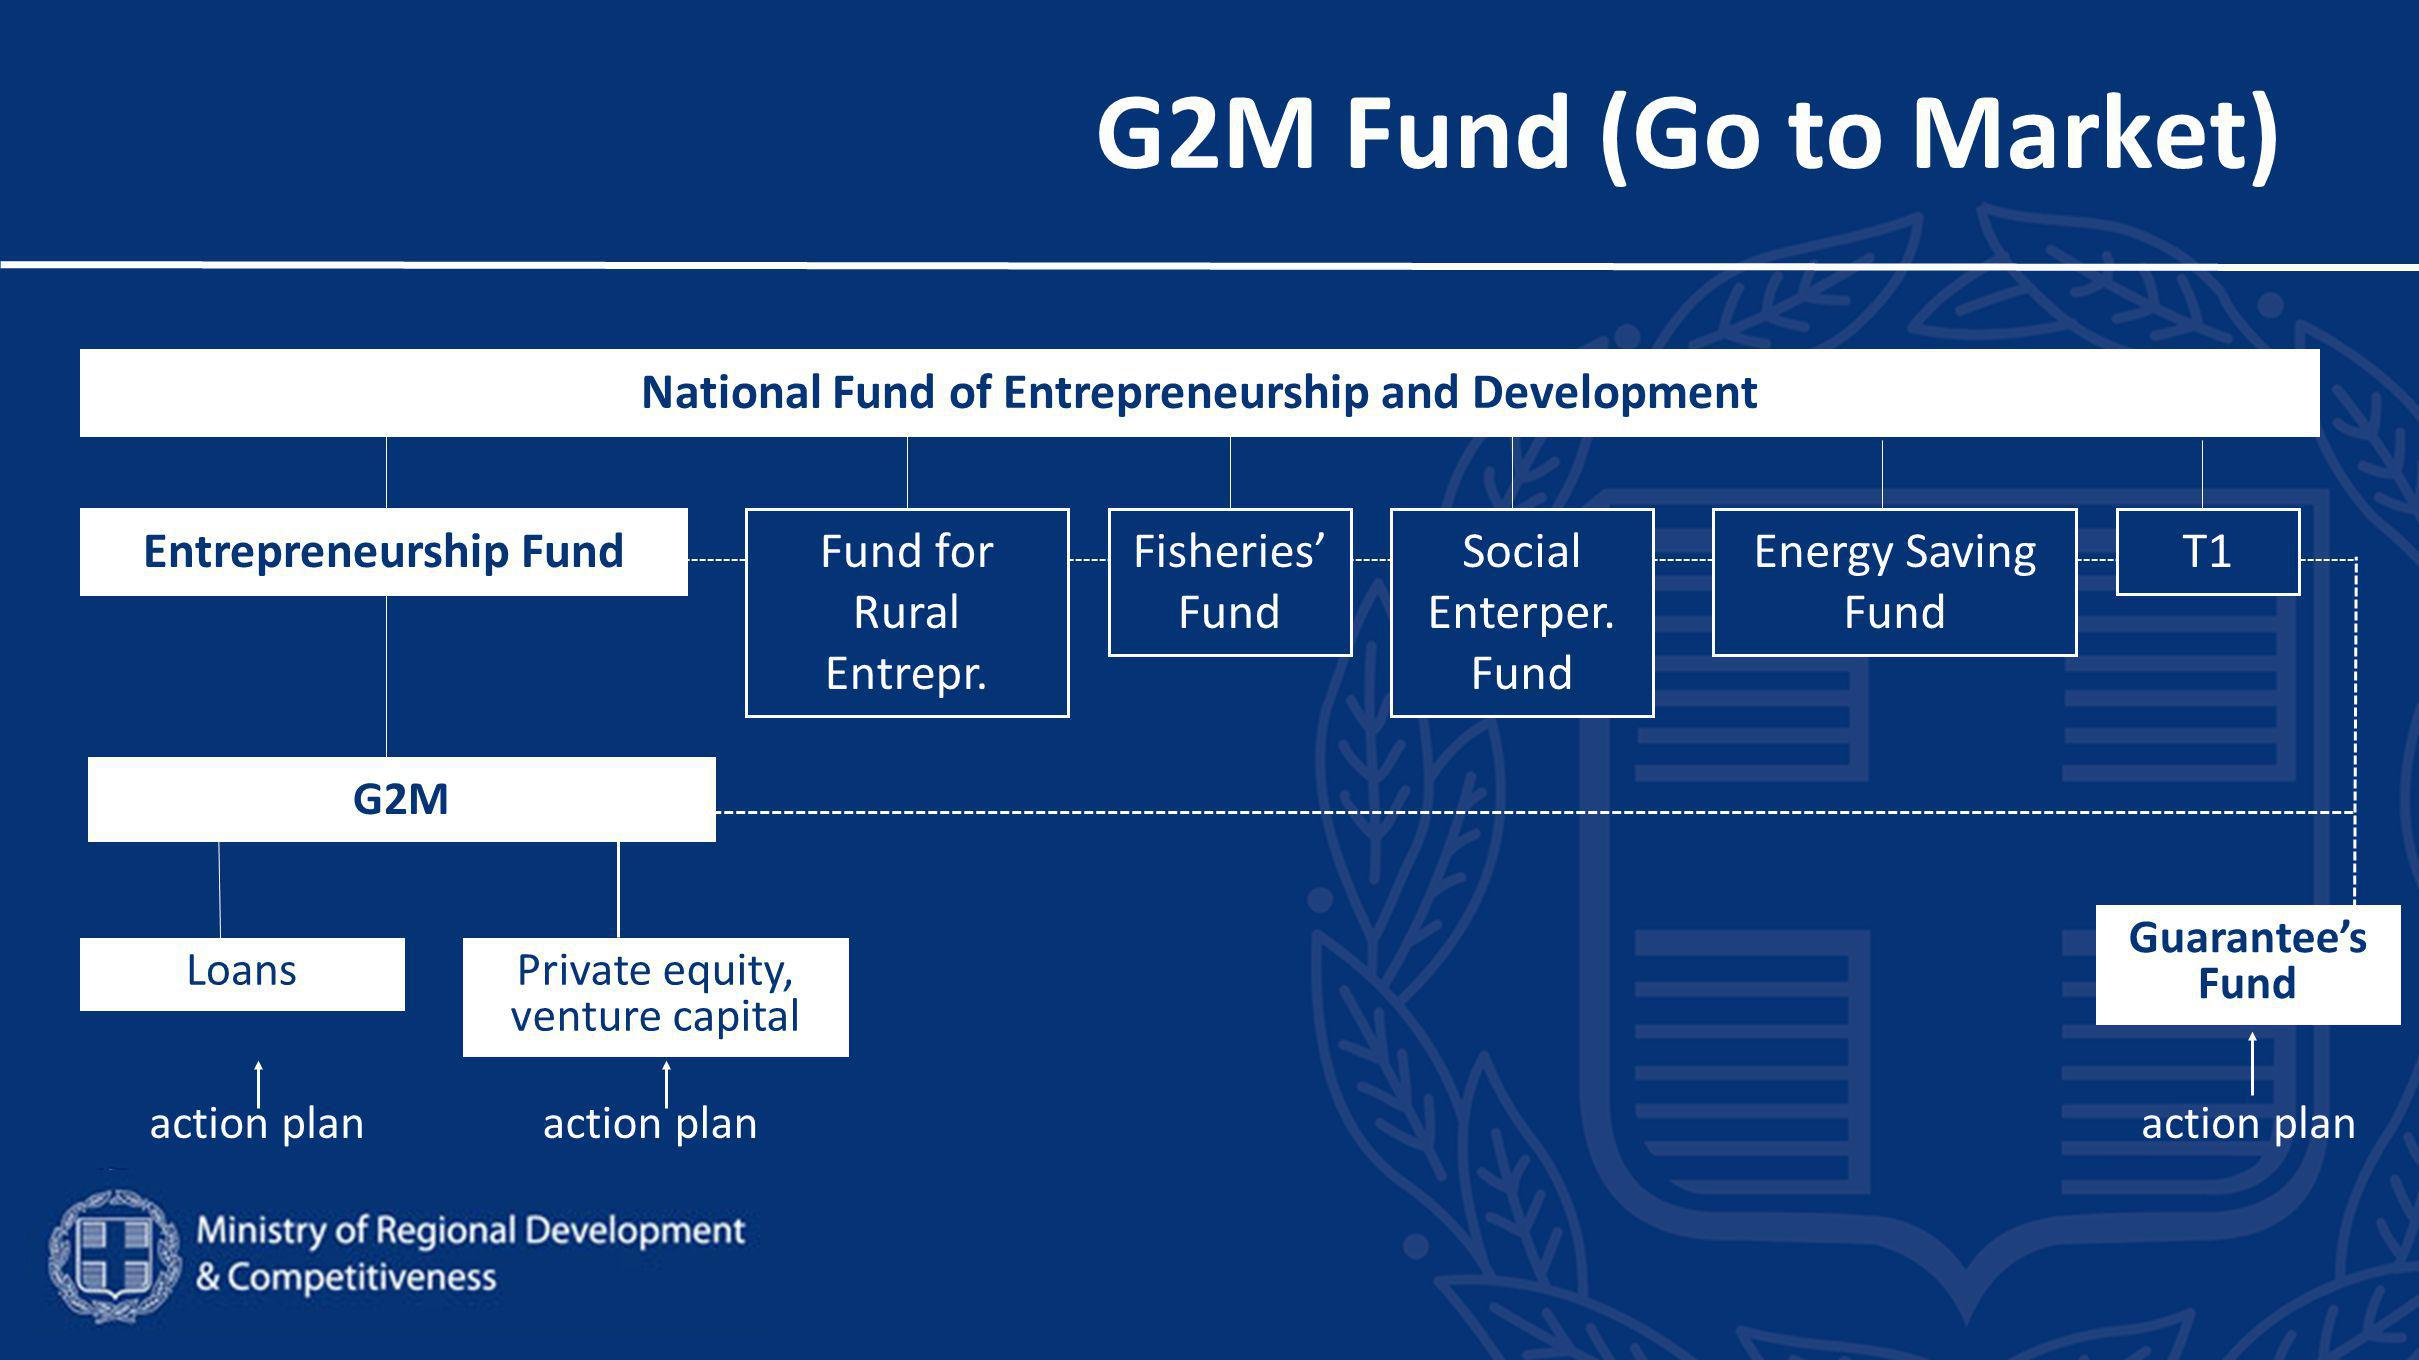 G2M Fund (Go to Market) National Fund of Entrepreneurship and Development G2M LoansPrivate equity, venture capital Guarantee's Fund action plan Entrepreneurship Fund action plan Fund for Rural Entrepr.